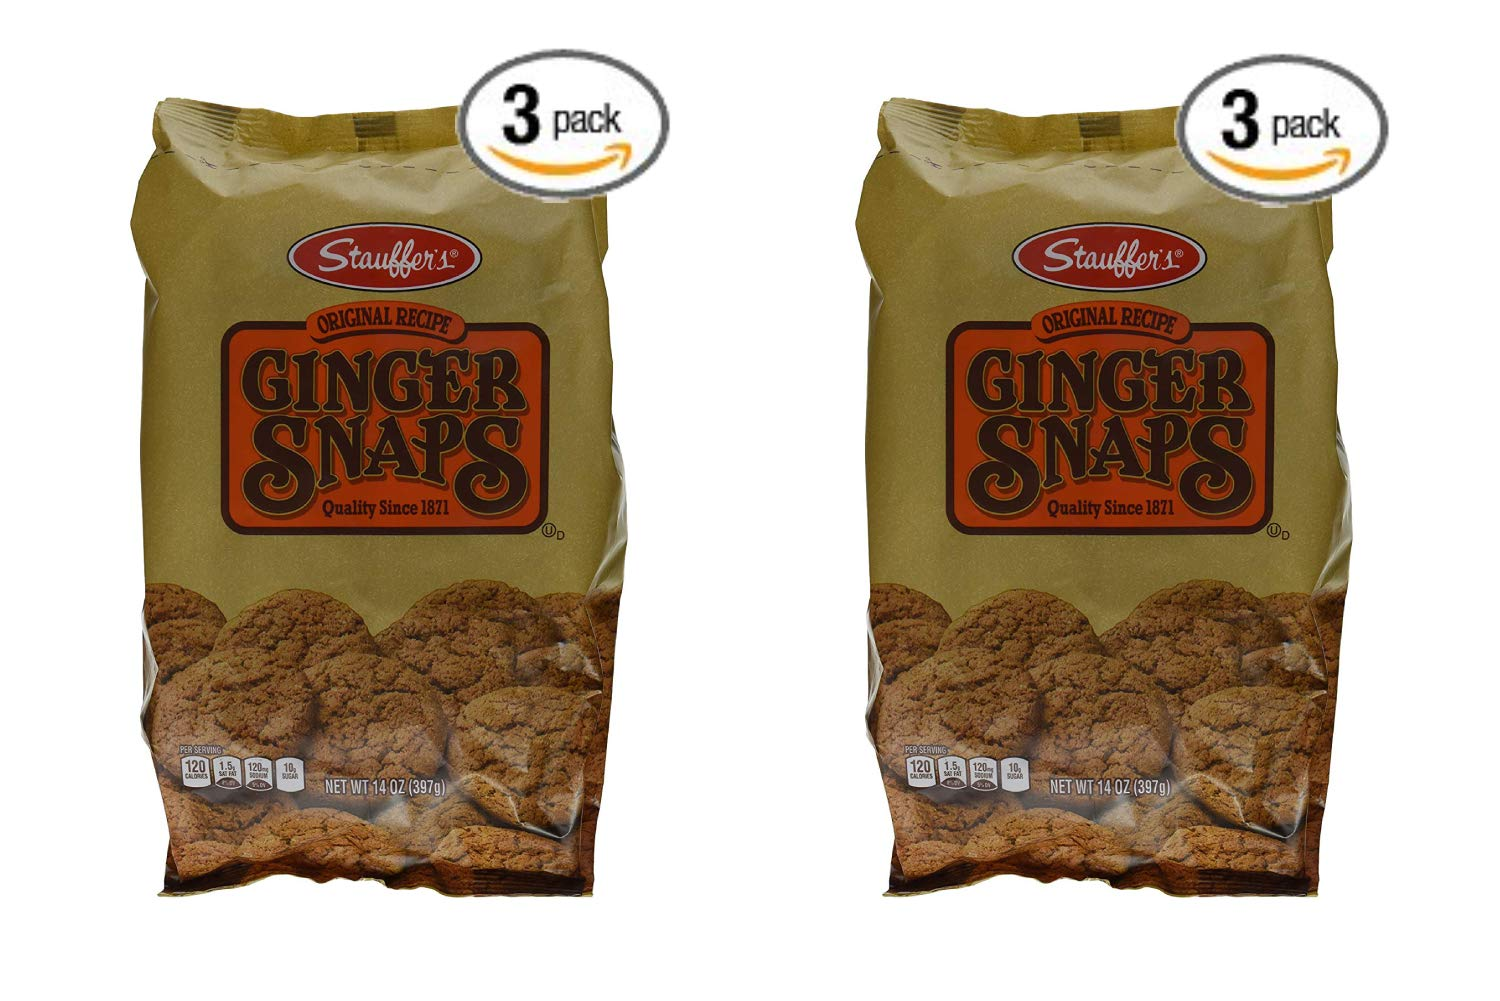 Stauffers Cookie Ginger Snap, Original, 14 Ounce (Pack of 3) (2 Pack)